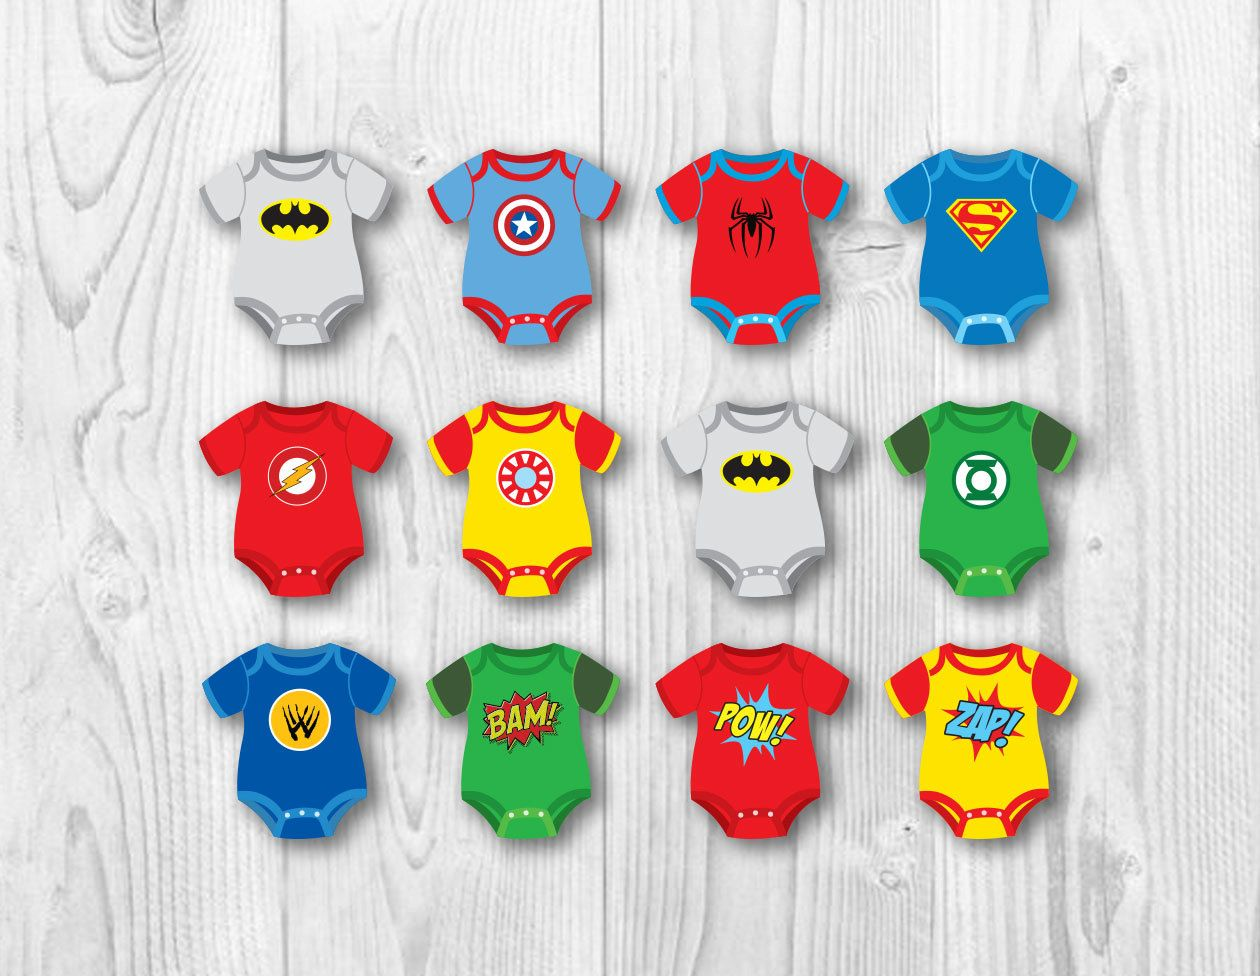 Cake Toppers Baby Shower Etsy : SUPERHERO BABY Cupcake Toppers. Baby Onesie Cake Toppers ...